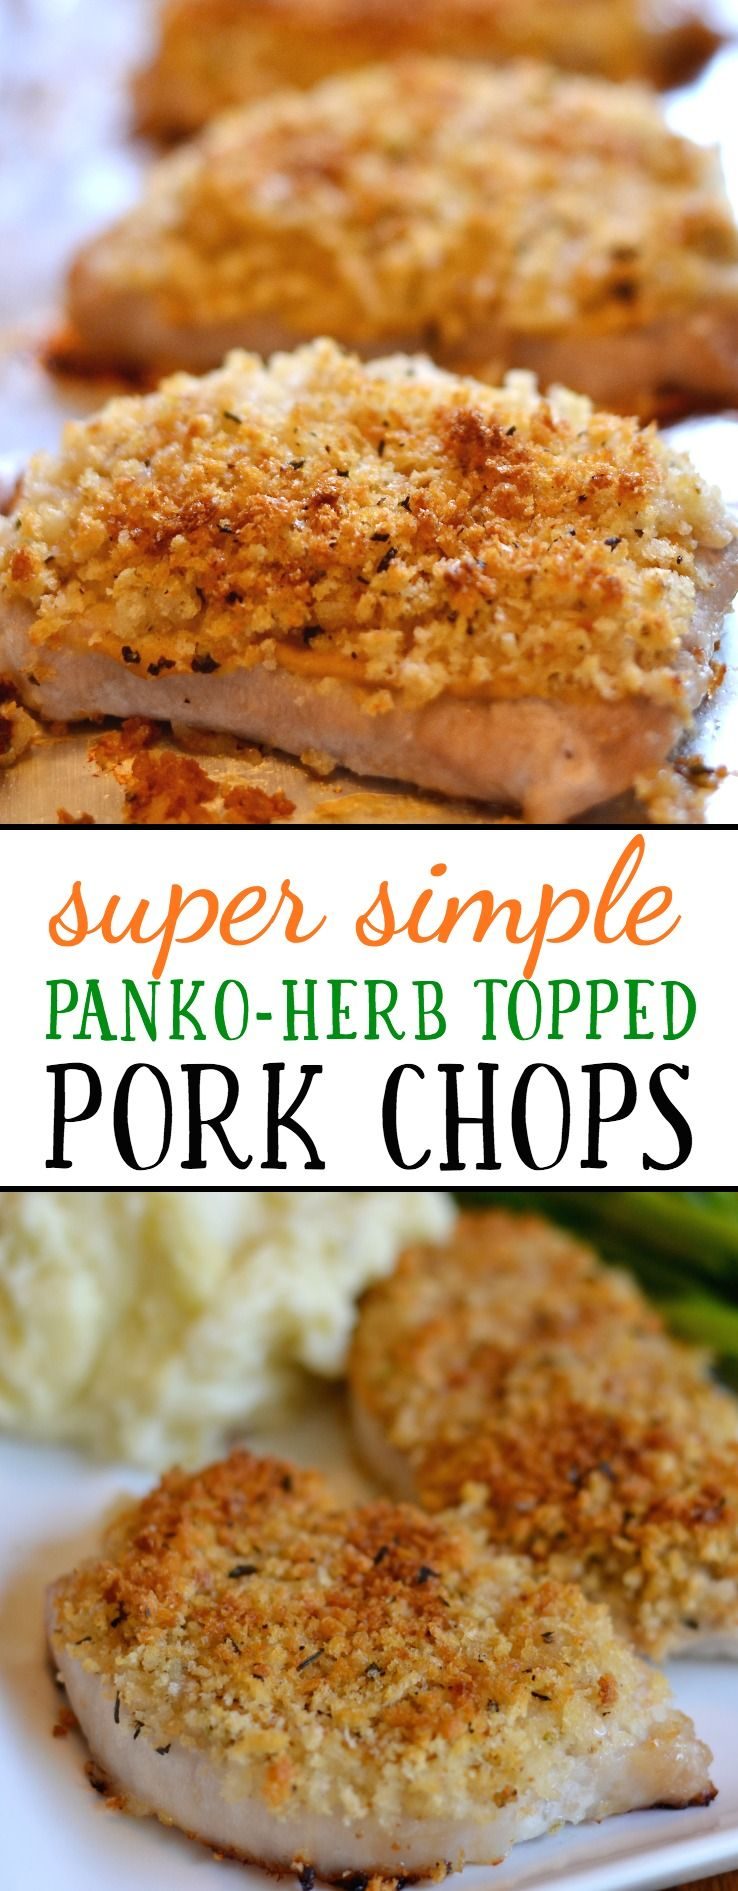 Easy Baked Pork Chops With Panko And Herb Topping  20161006friedporkchopsvickywasik8g